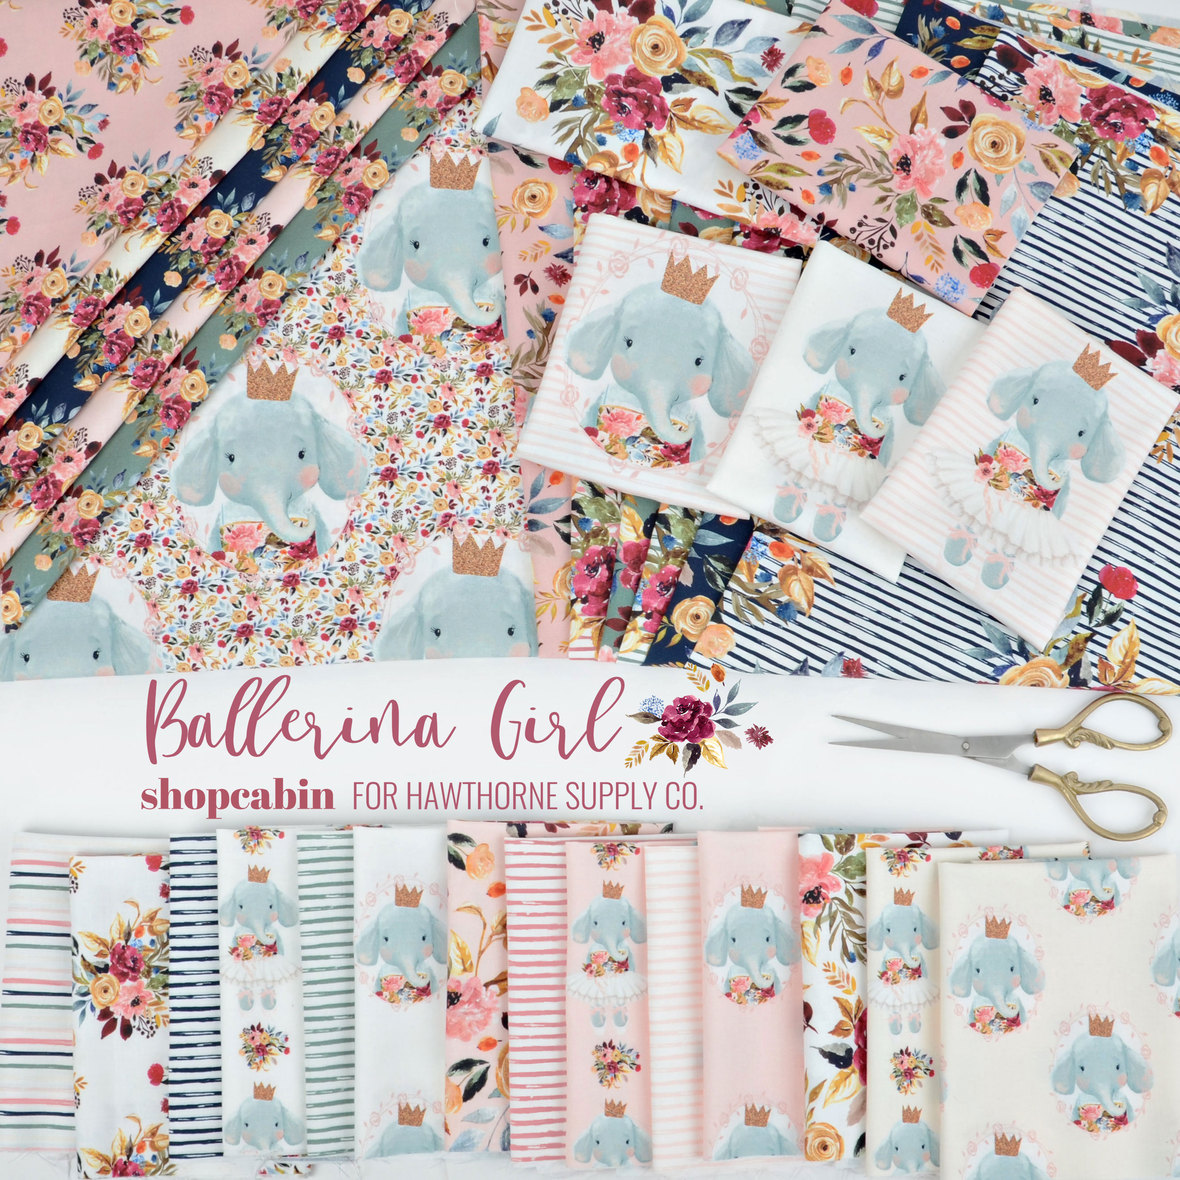 Balleriba-Girl-Shopcabin-Elephant-fabric-for-Hawthorne-Supply-Co-edit